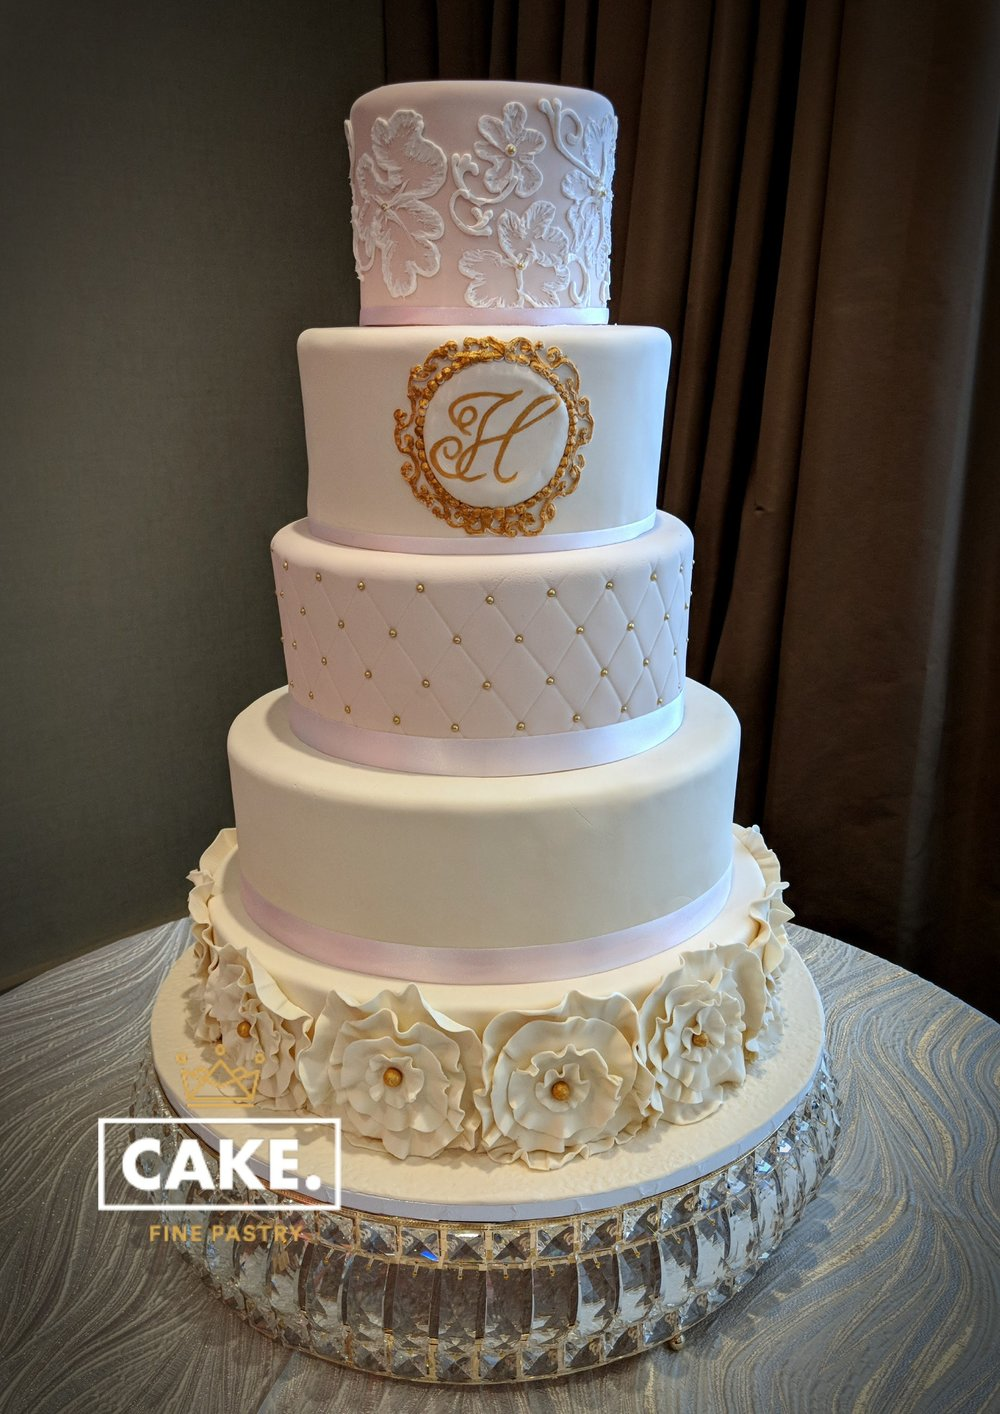 Custom Cakes Houston Cake Fine Pastry